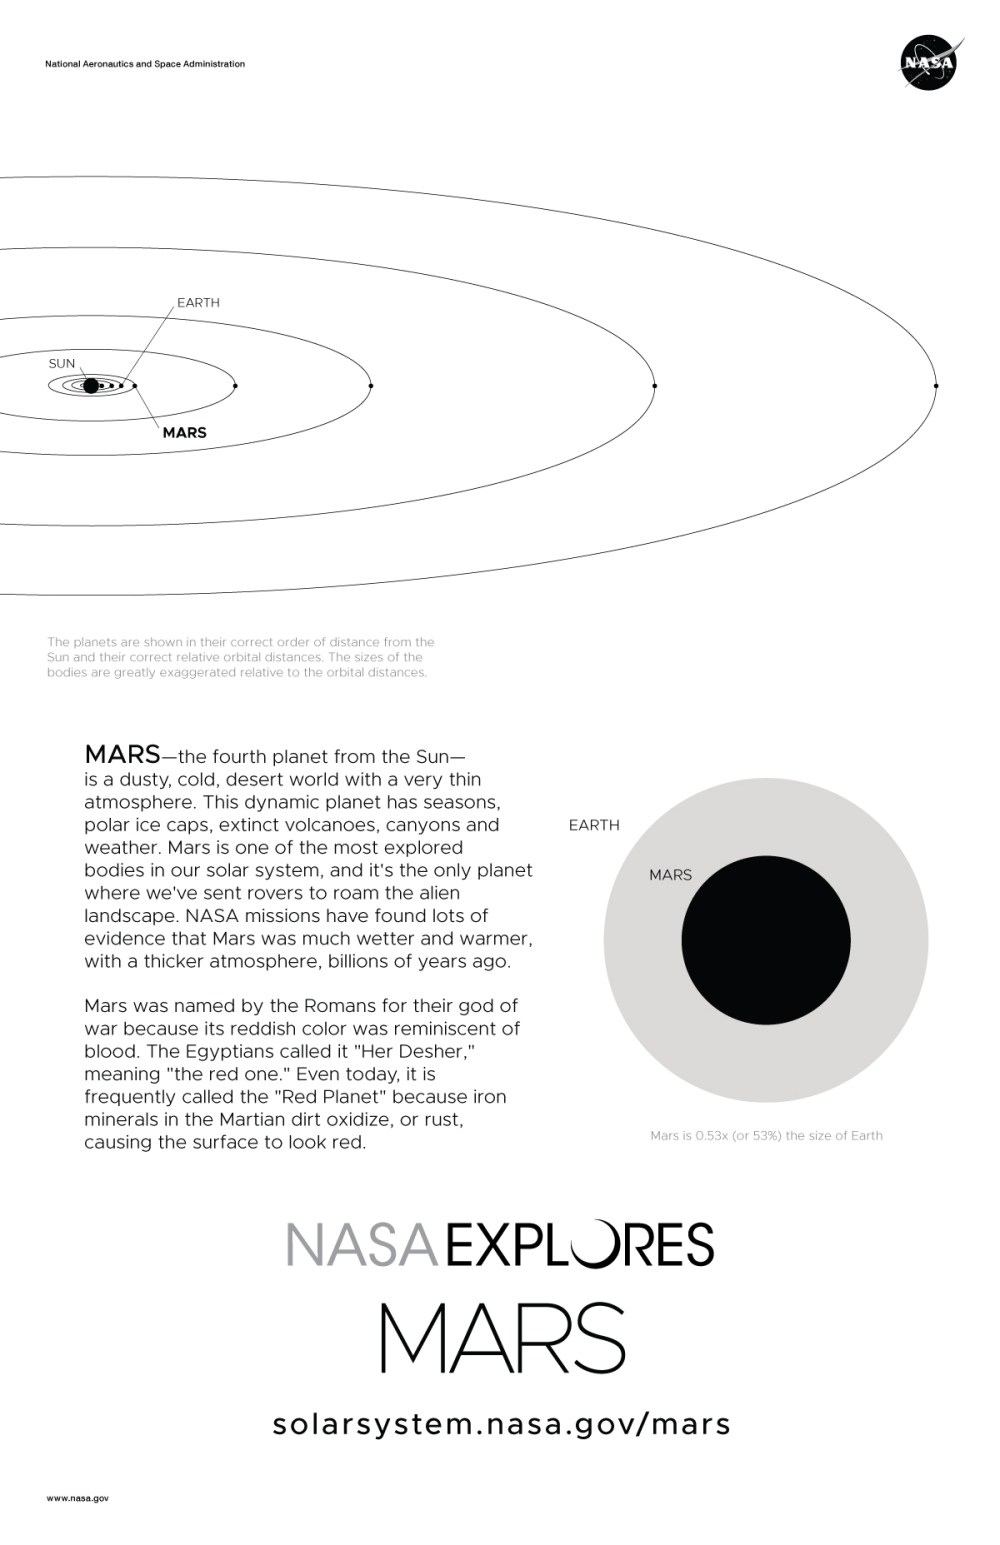 medium resolution of mars poster back with orbit diagram and size comparison